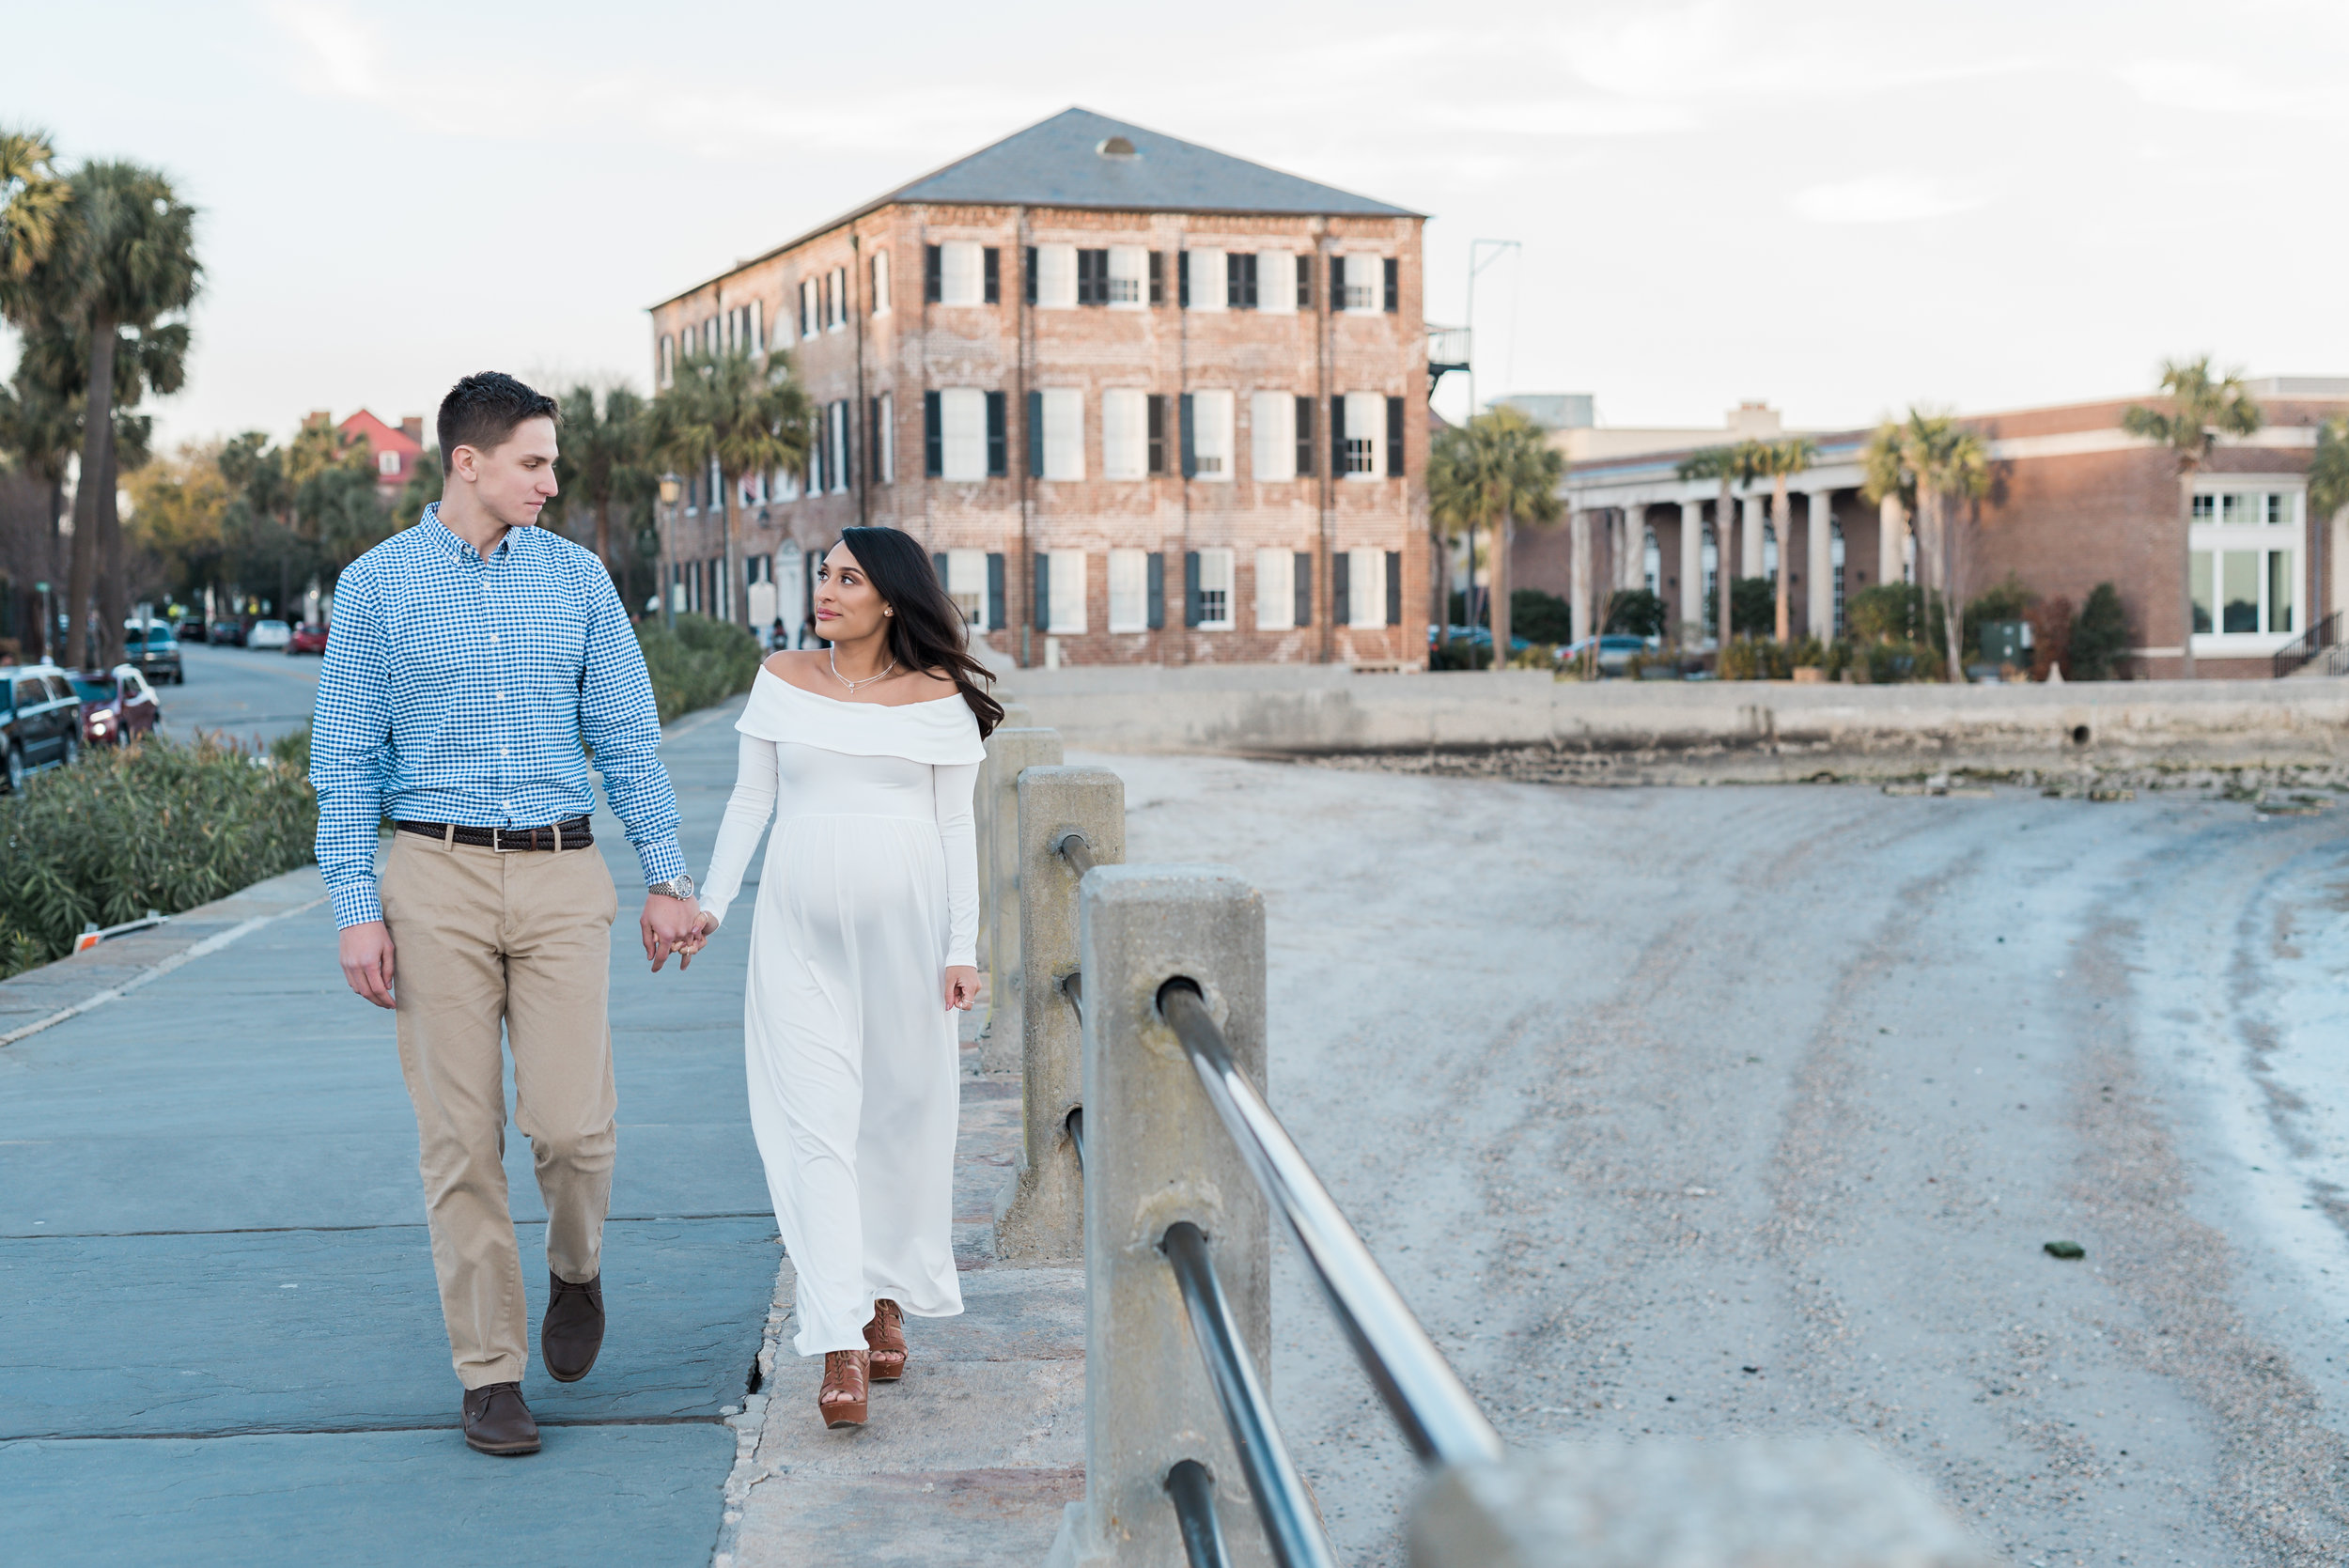 Charleston-Maternity-Photographer-Following-Seas-Photography-6638 copy.jpg